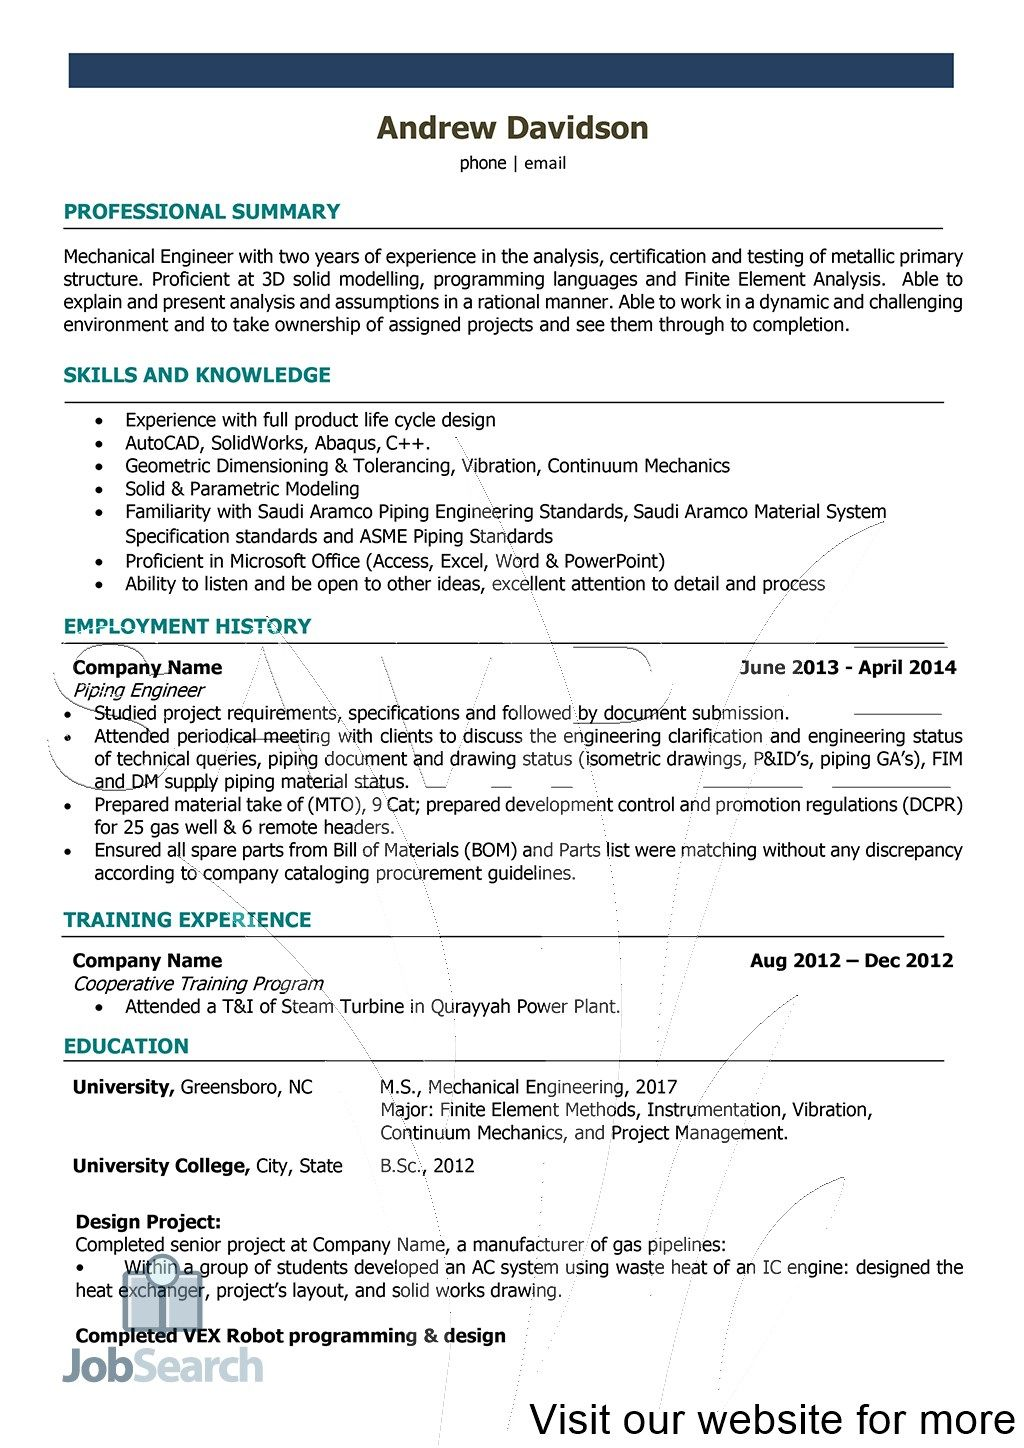 Resume for Engineering Internship Students Resume